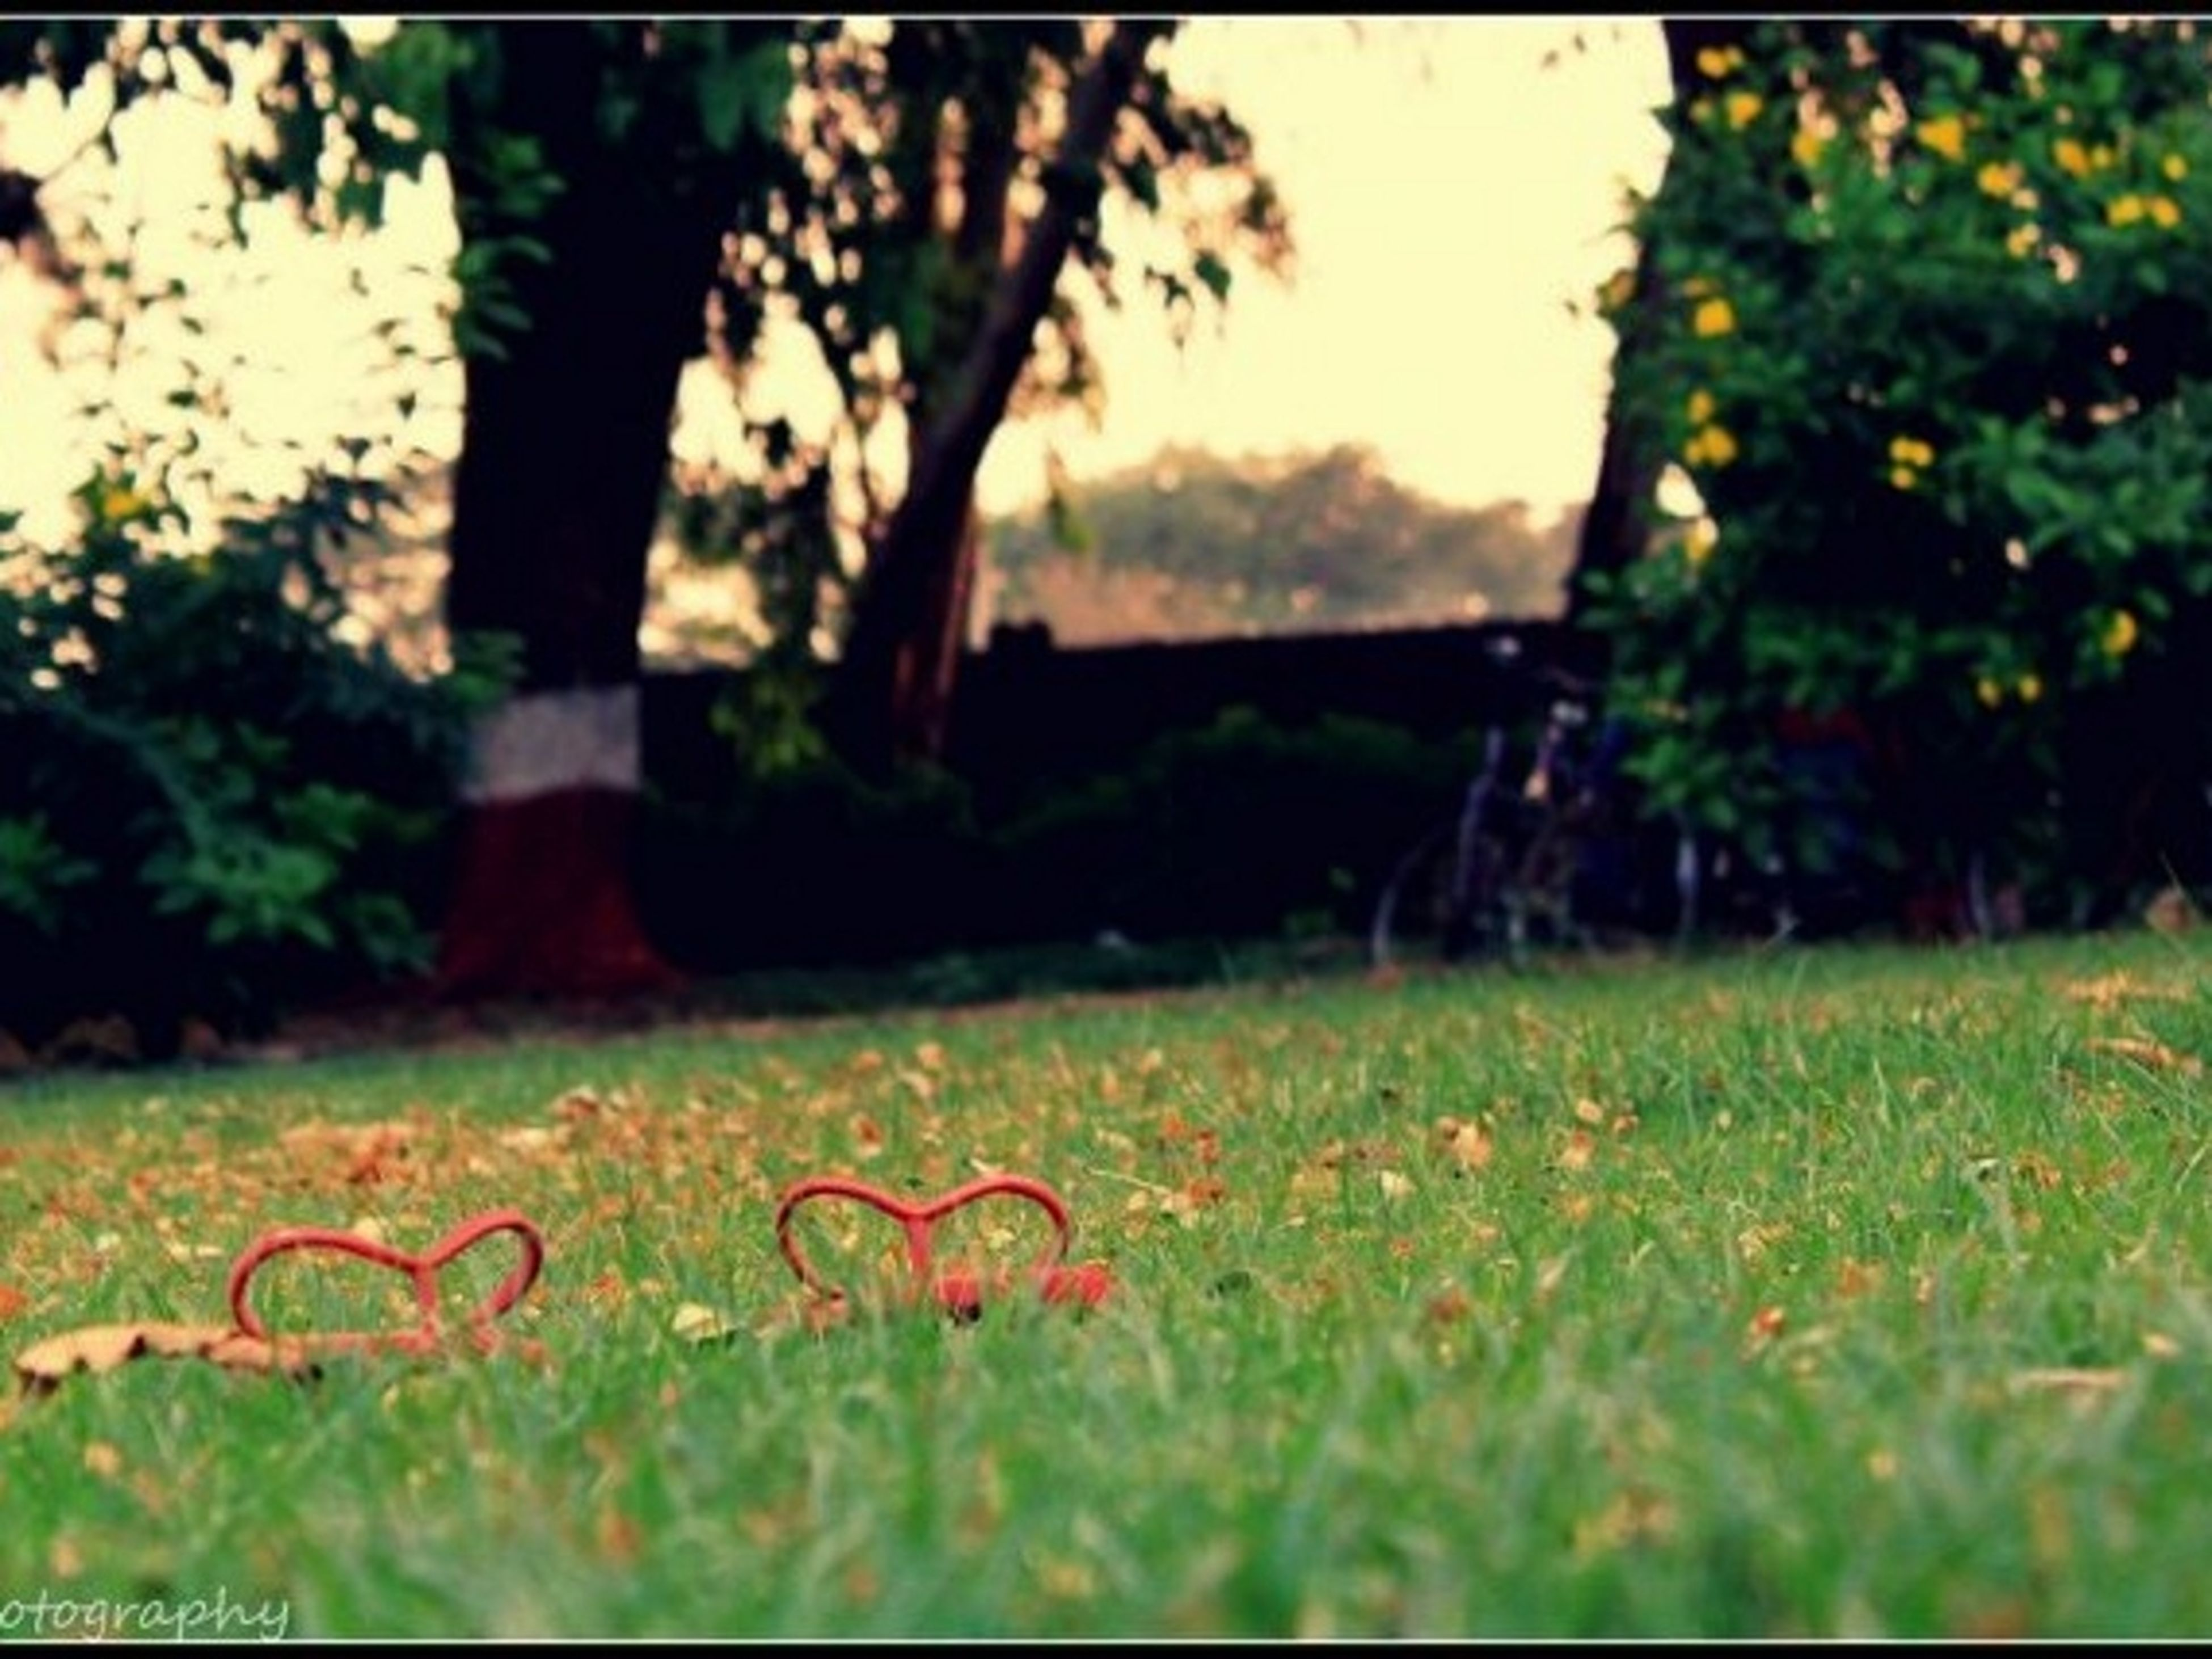 grass, grassy, field, growth, green color, tree, selective focus, nature, tranquility, focus on foreground, landscape, lawn, beauty in nature, tranquil scene, surface level, plant, park - man made space, no people, meadow, day